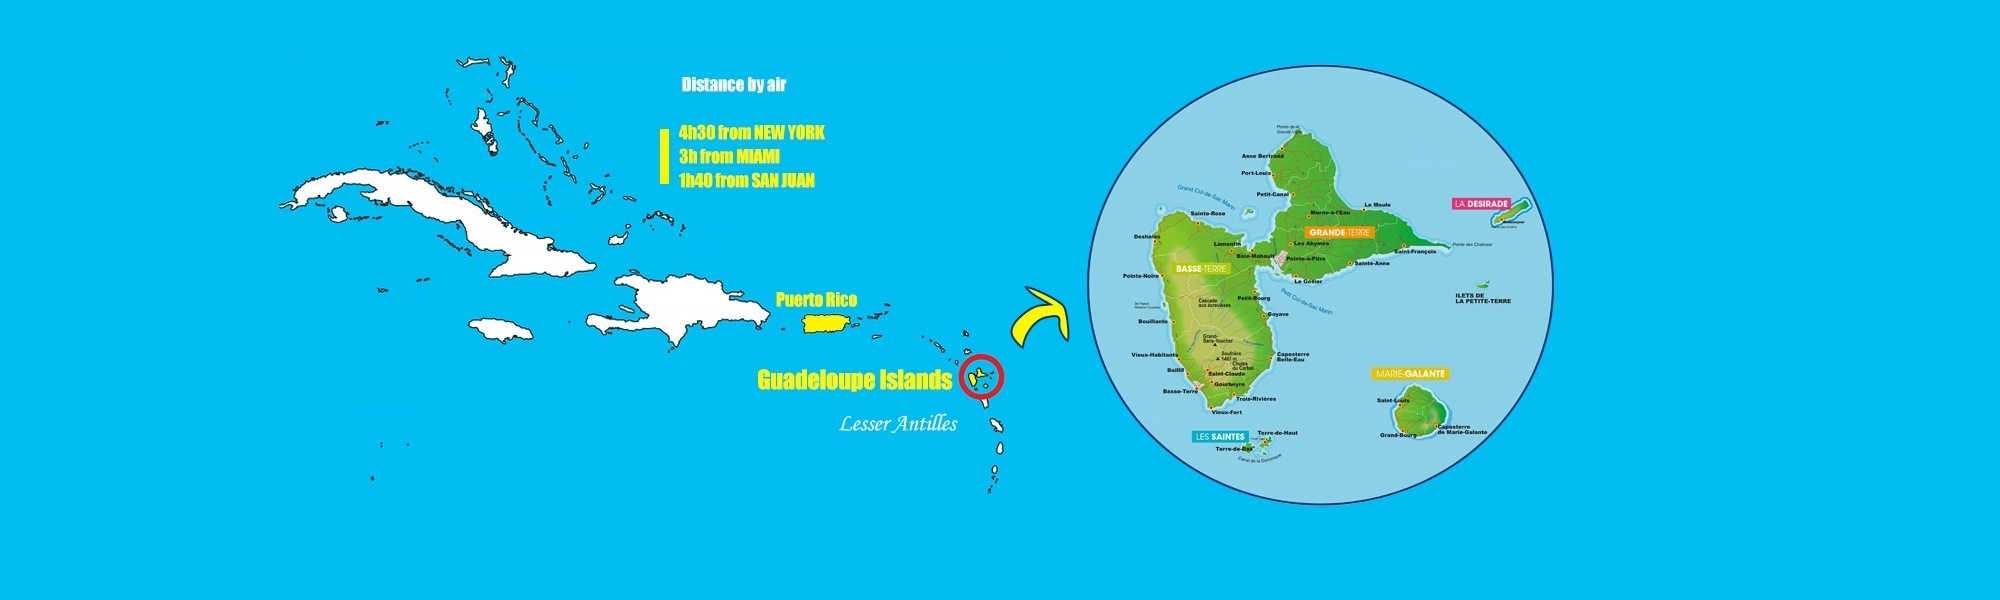 Our Archipelago | Guadeloupe Islands